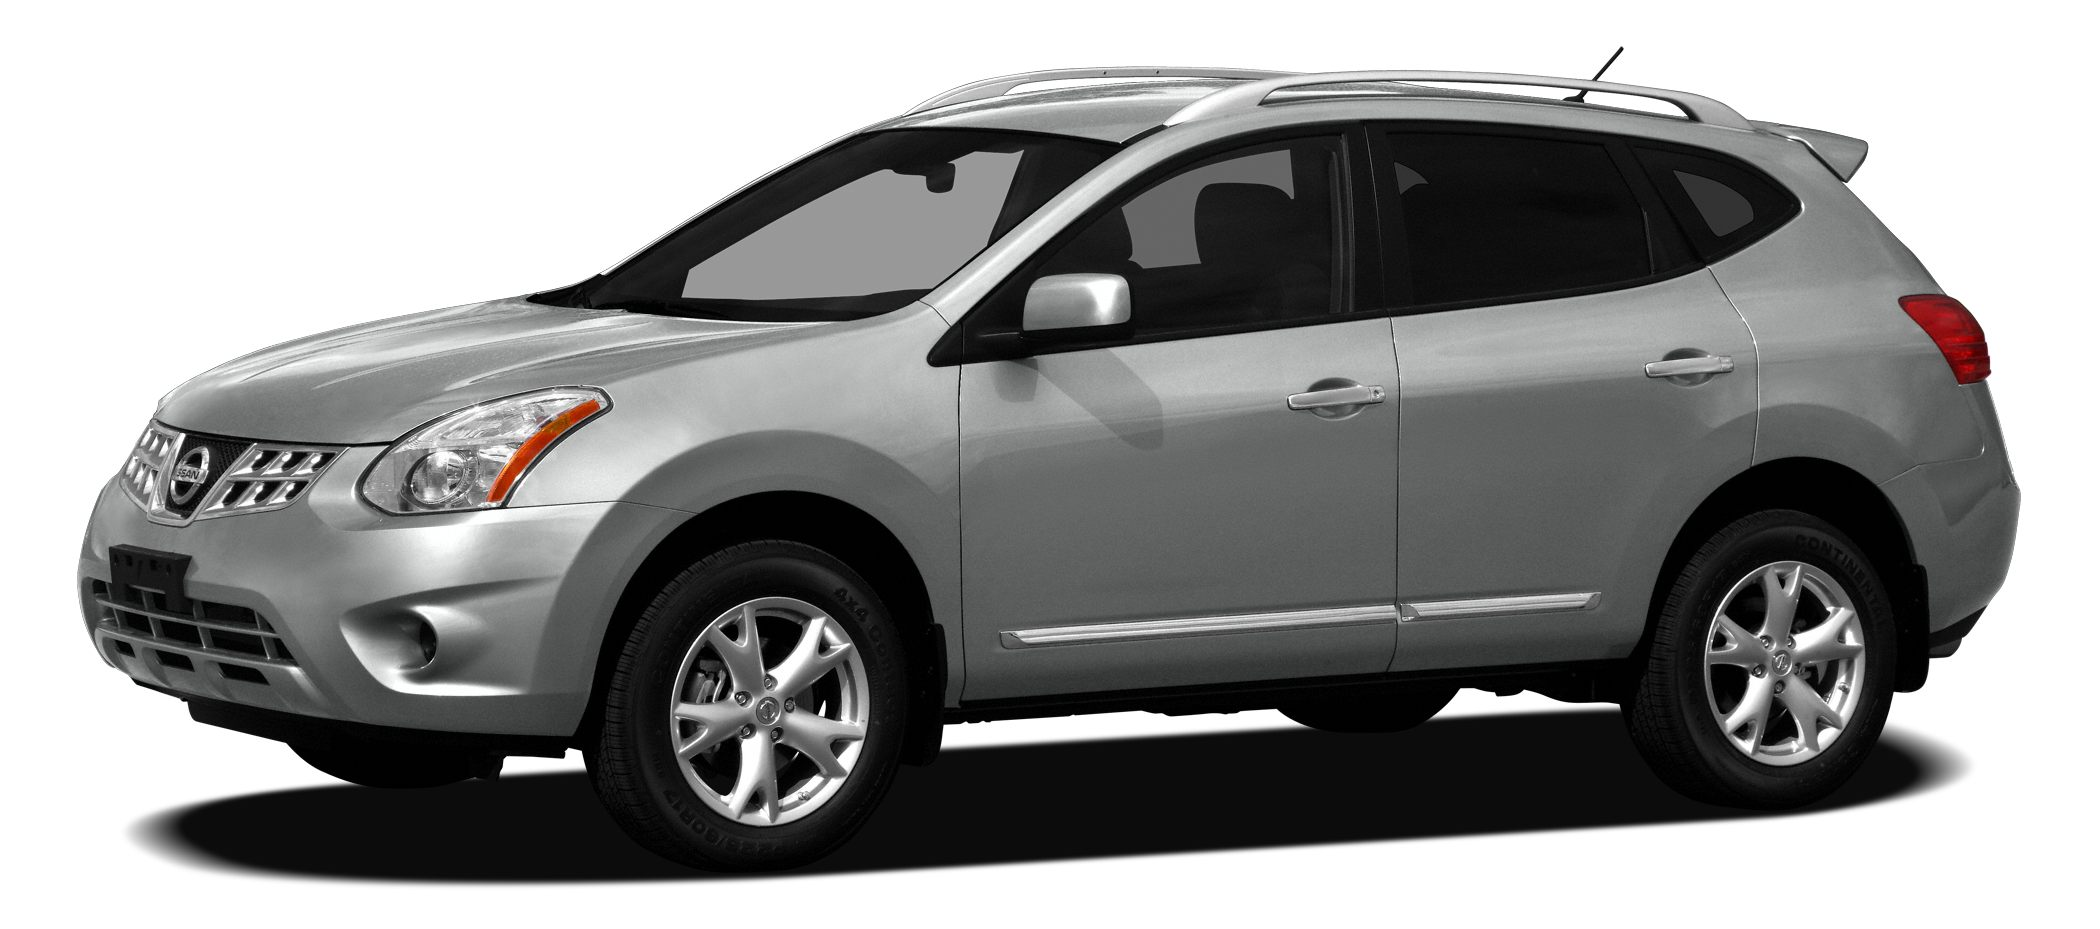 2011 Nissan Rogue SV Your bones have never been happier Breathing space belongs to all aboardIf